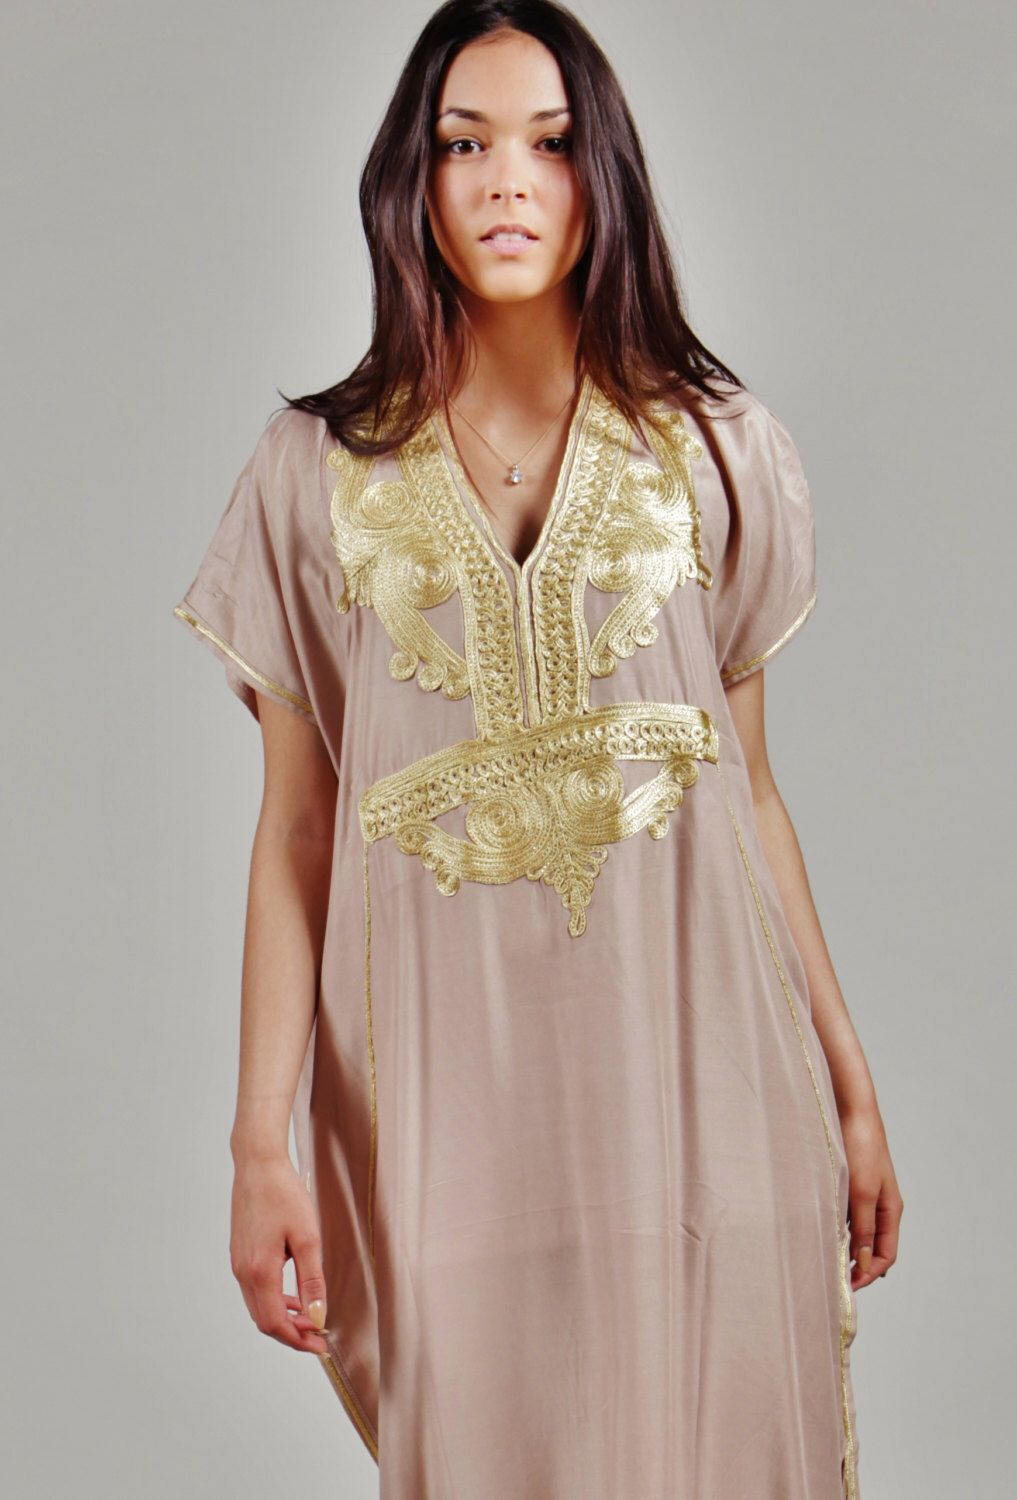 356c95ec23 BEIGE Marrakech Resort Caftan Kaftan - resortwear,loungewear, maxi dresses,  birthdays, honeymoon